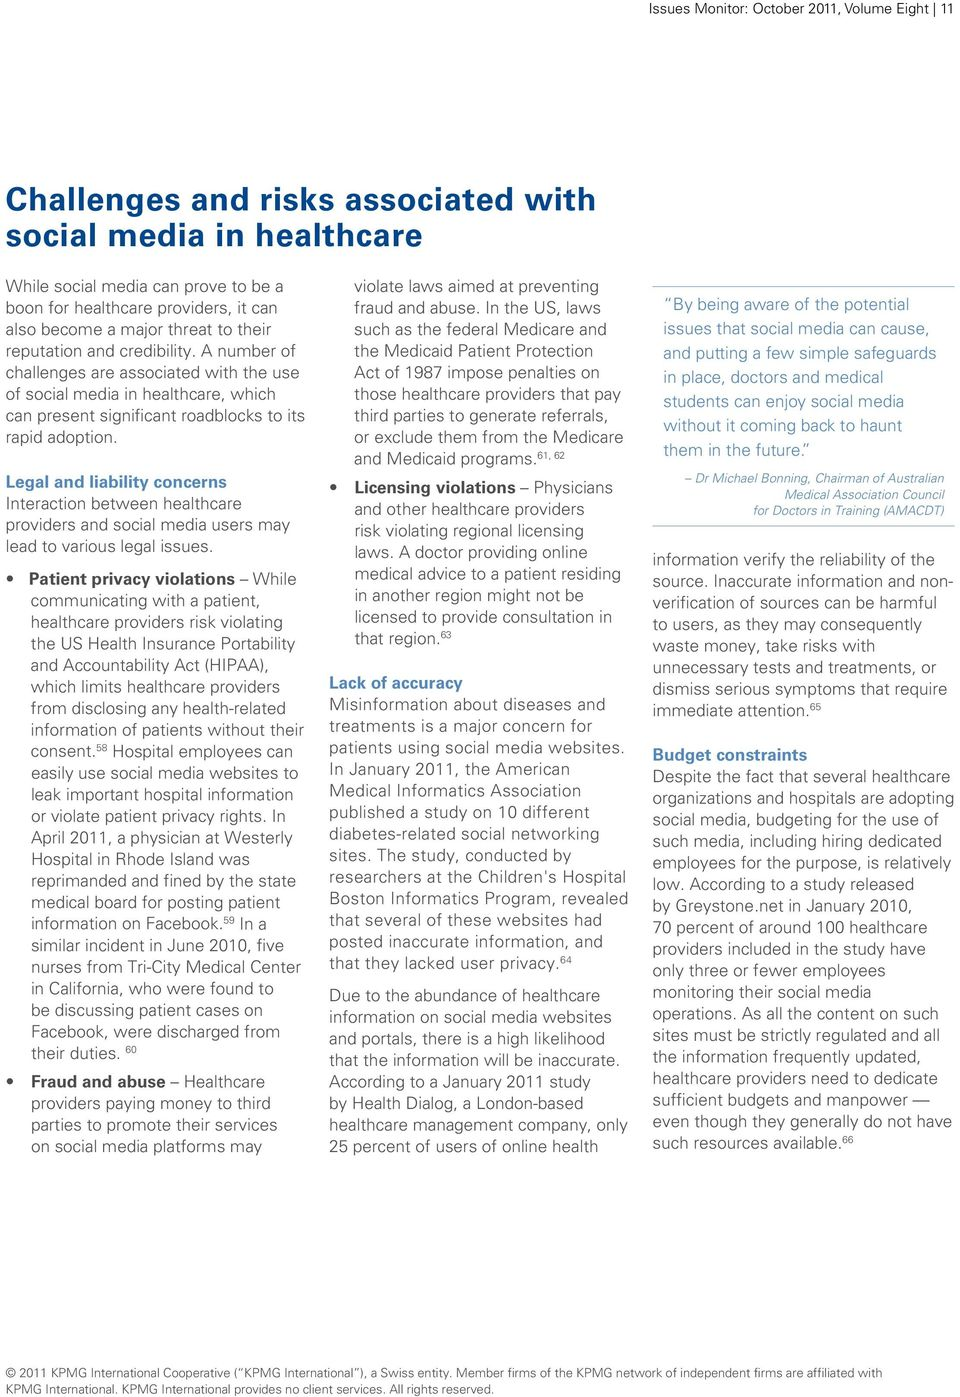 A number of challenges are associated with the use of social media in healthcare, which can present significant roadblocks to its rapid adoption.